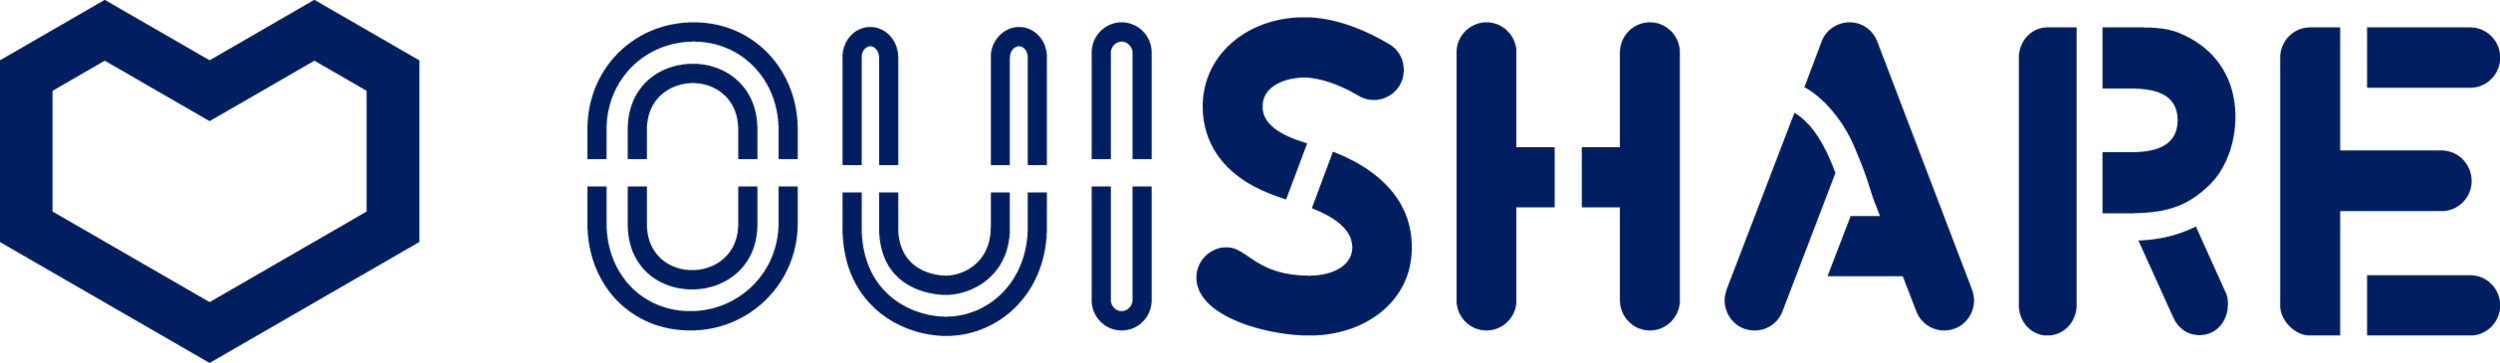 LOGO_OUISHARE_global-SMALL-RGB.png